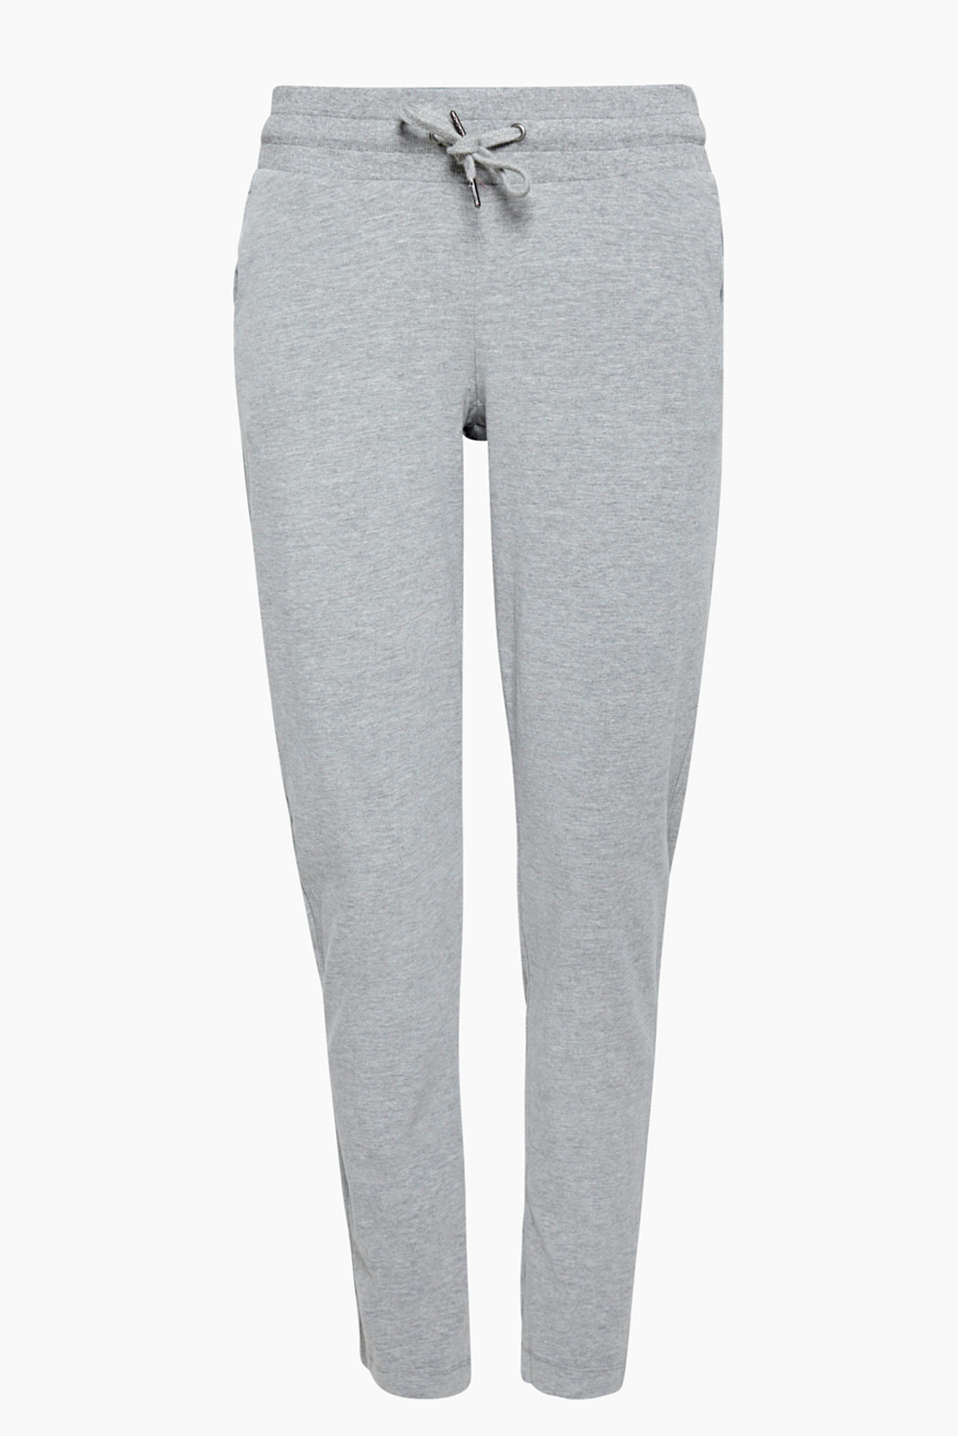 Comfy fave: these melange jersey tracksuit bottoms are fantastic for sport and chilling out.